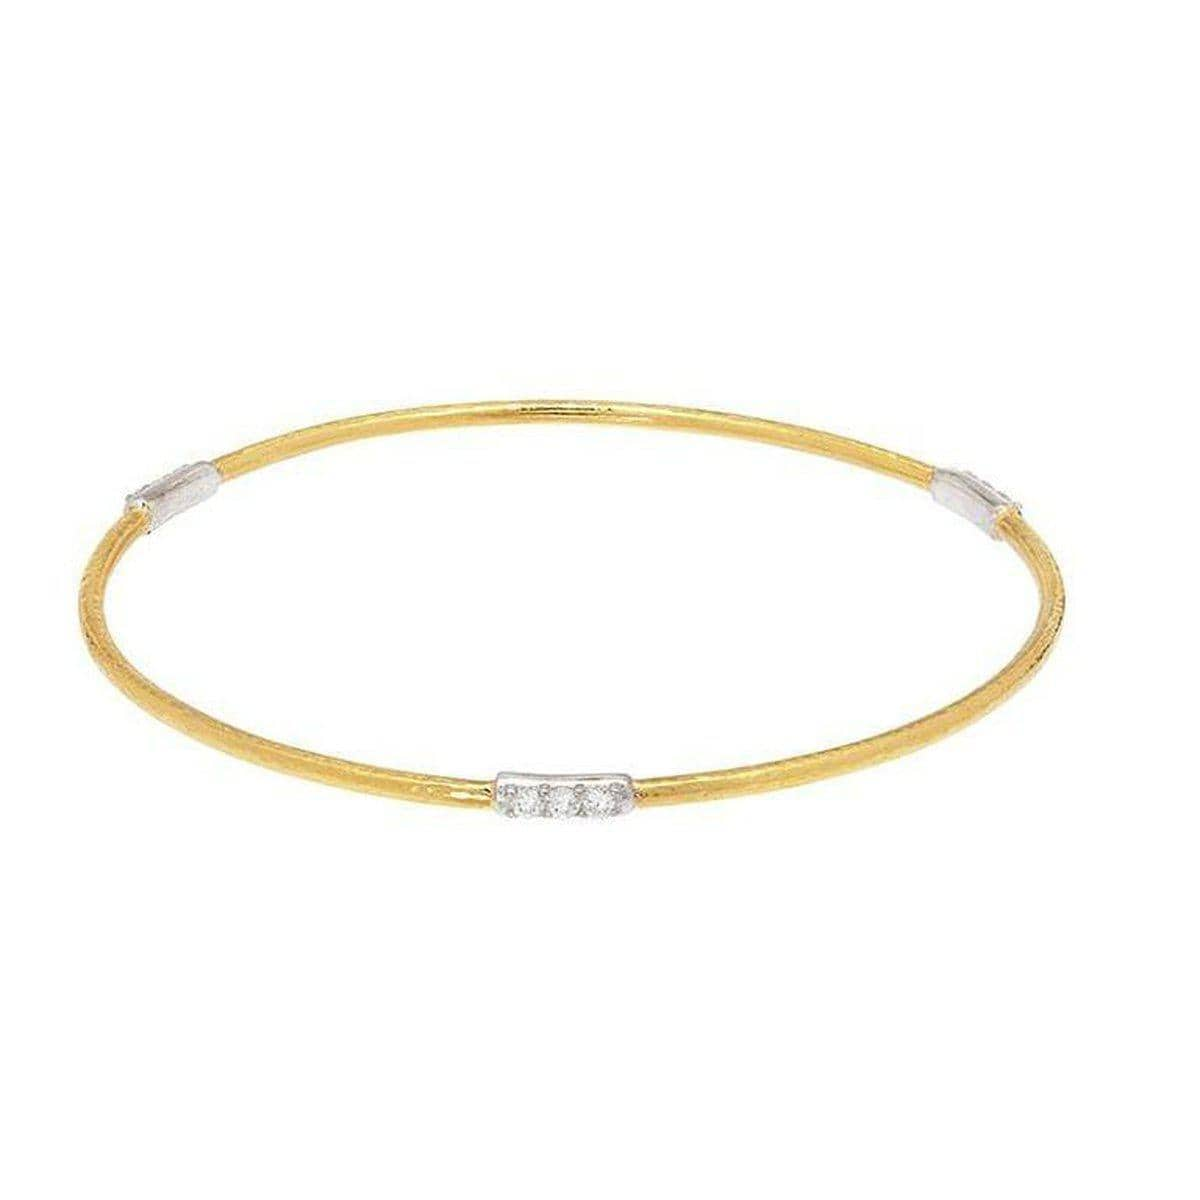 Delicate 22K Gold White Diamond Bracelet - BB290-3VP3DI-GURHAN-Renee Taylor Gallery